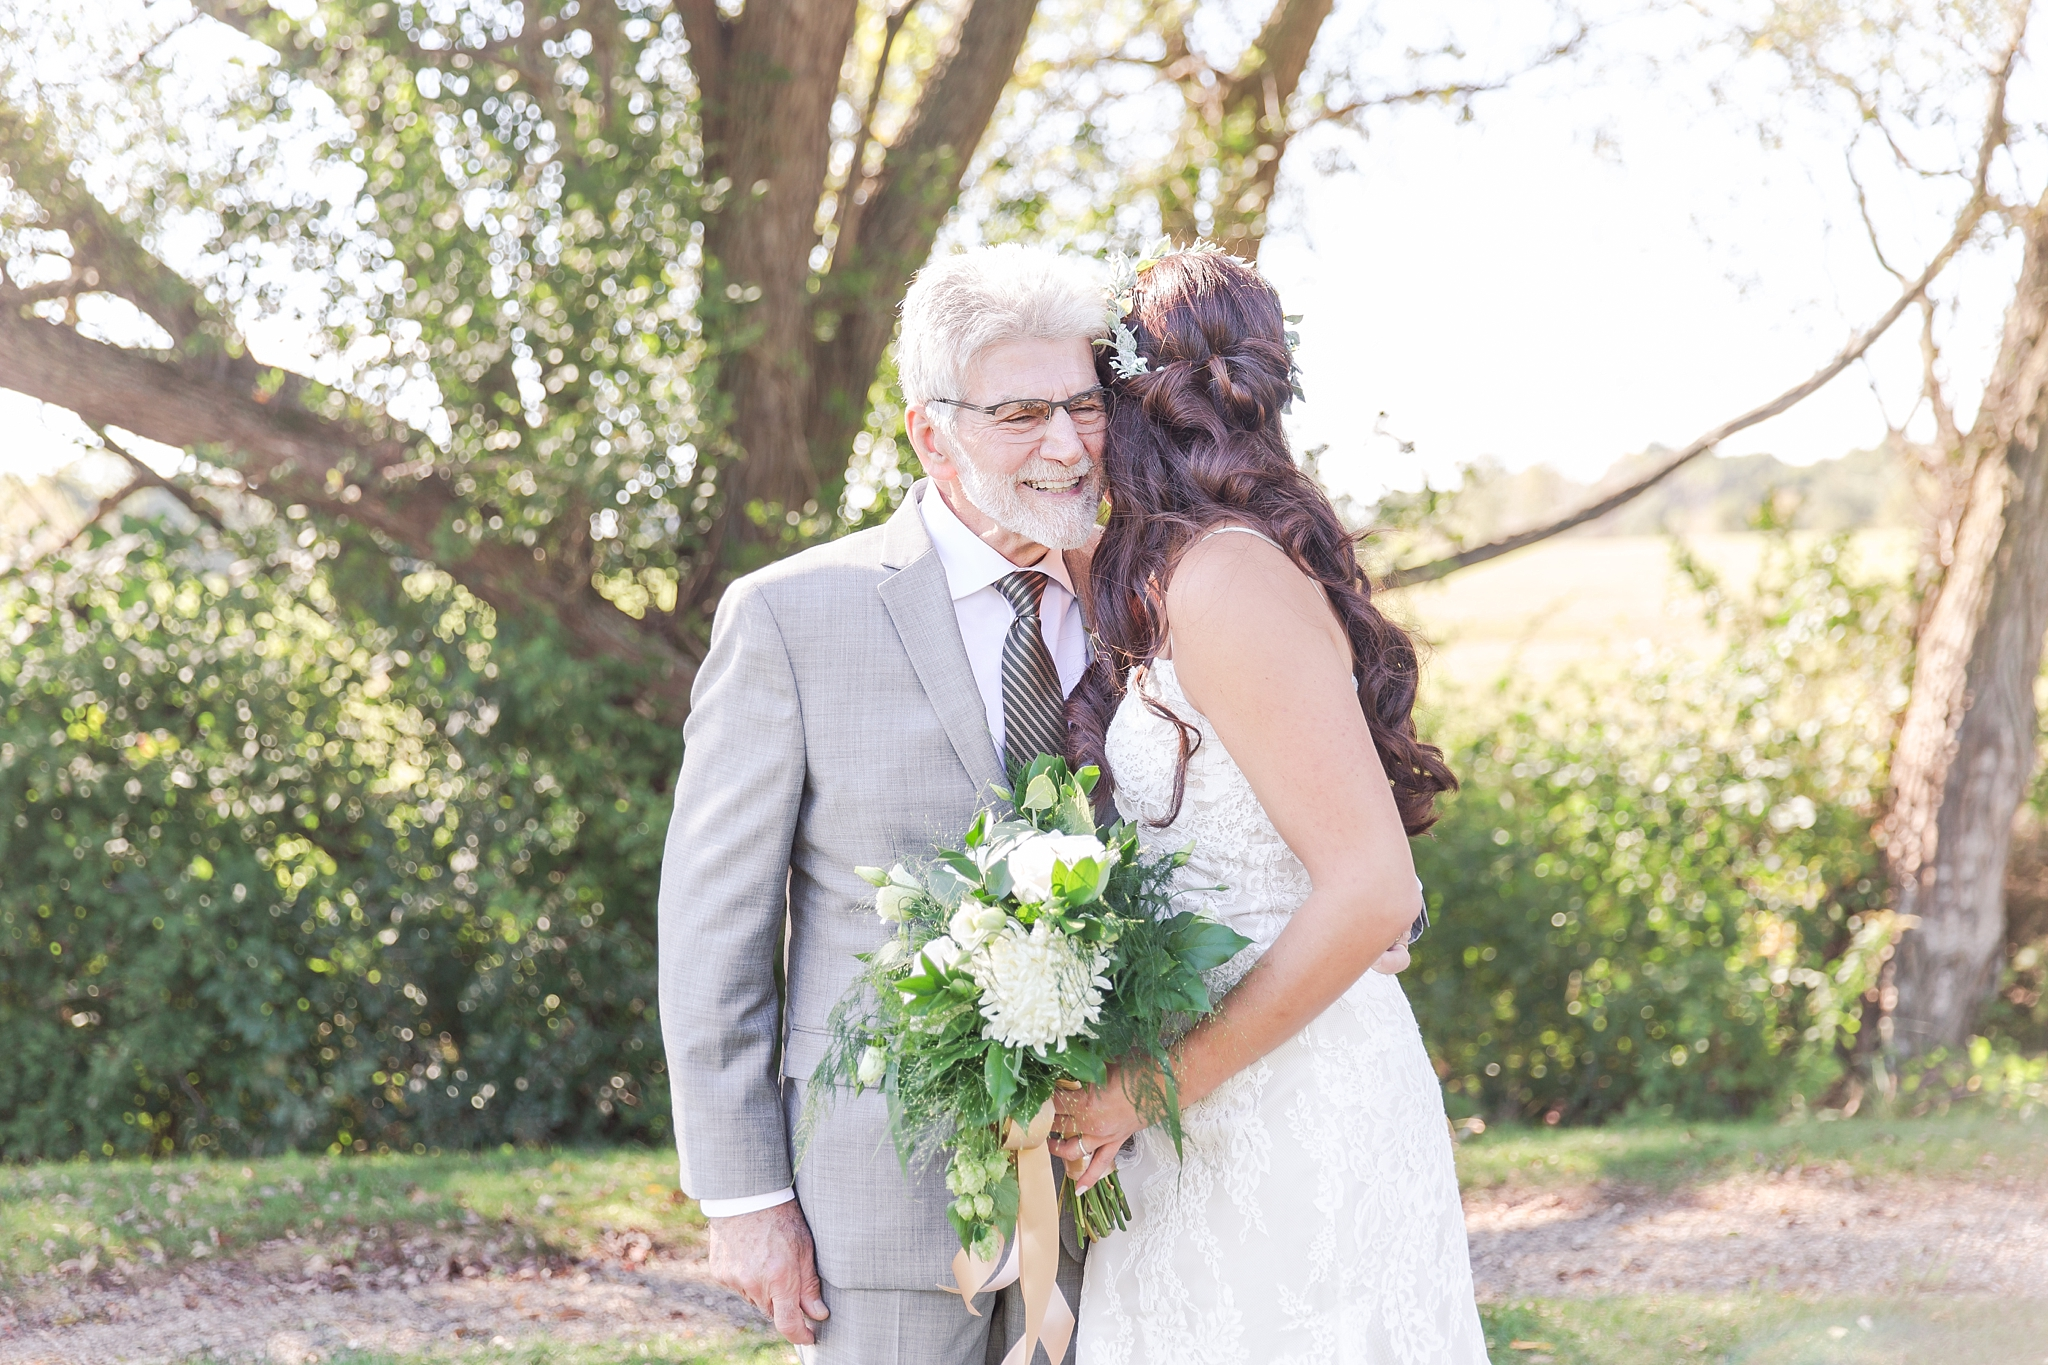 natural-rustic-wedding-photos-at-frutig-farms-the-valley-in-ann-arbor-michigan-by-courtney-carolyn-photography_0054.jpg